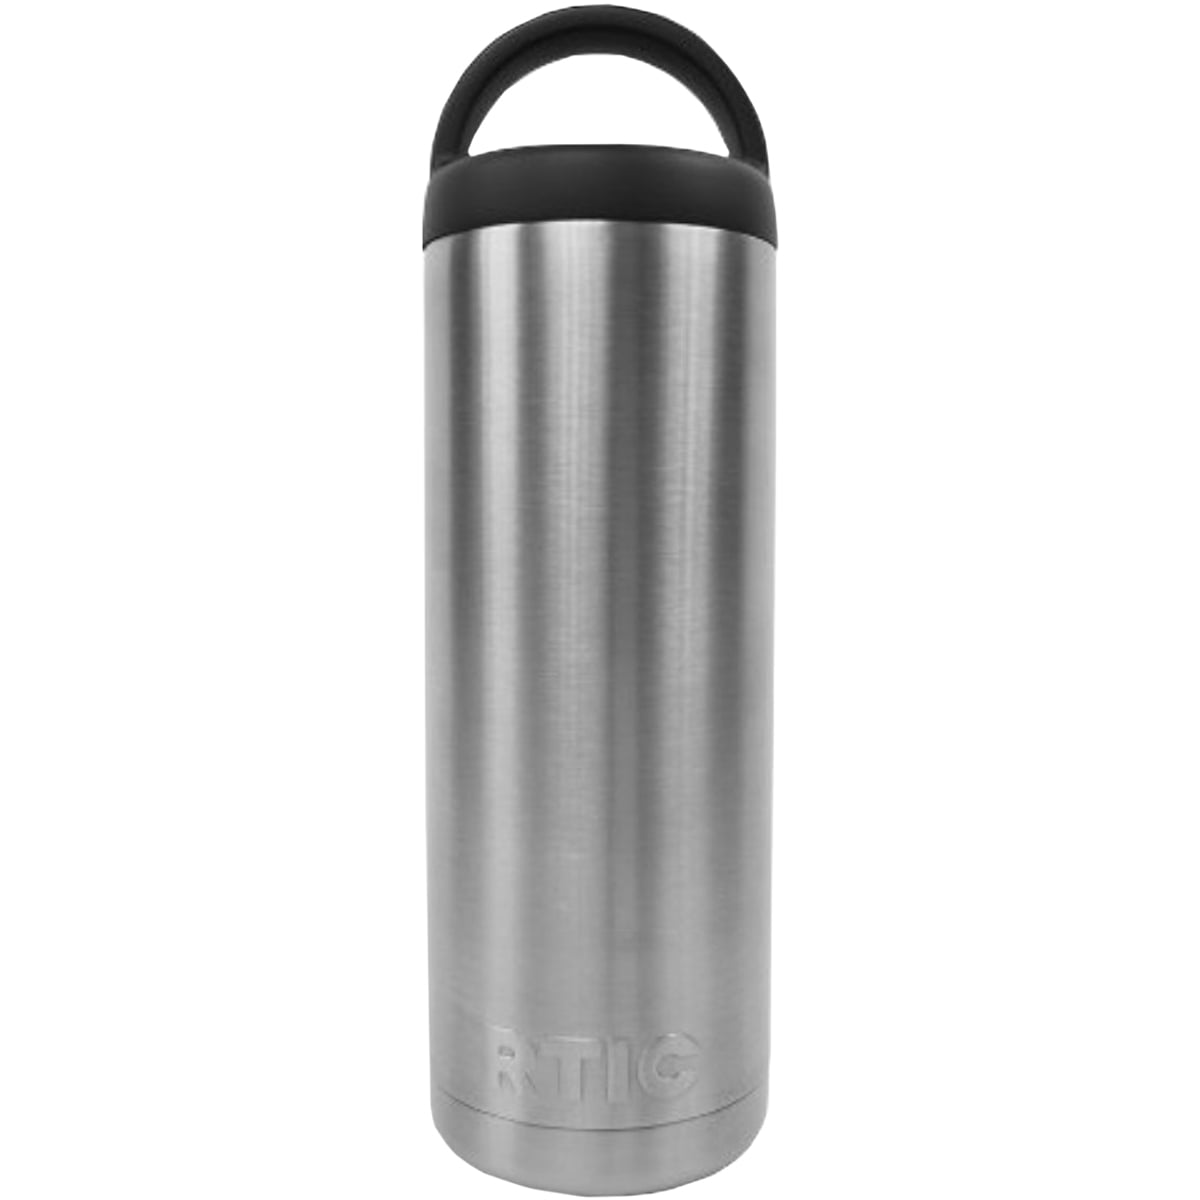 Stainless Steel Double Vacuum Insulated Bottle RTIC Coolers 18 oz